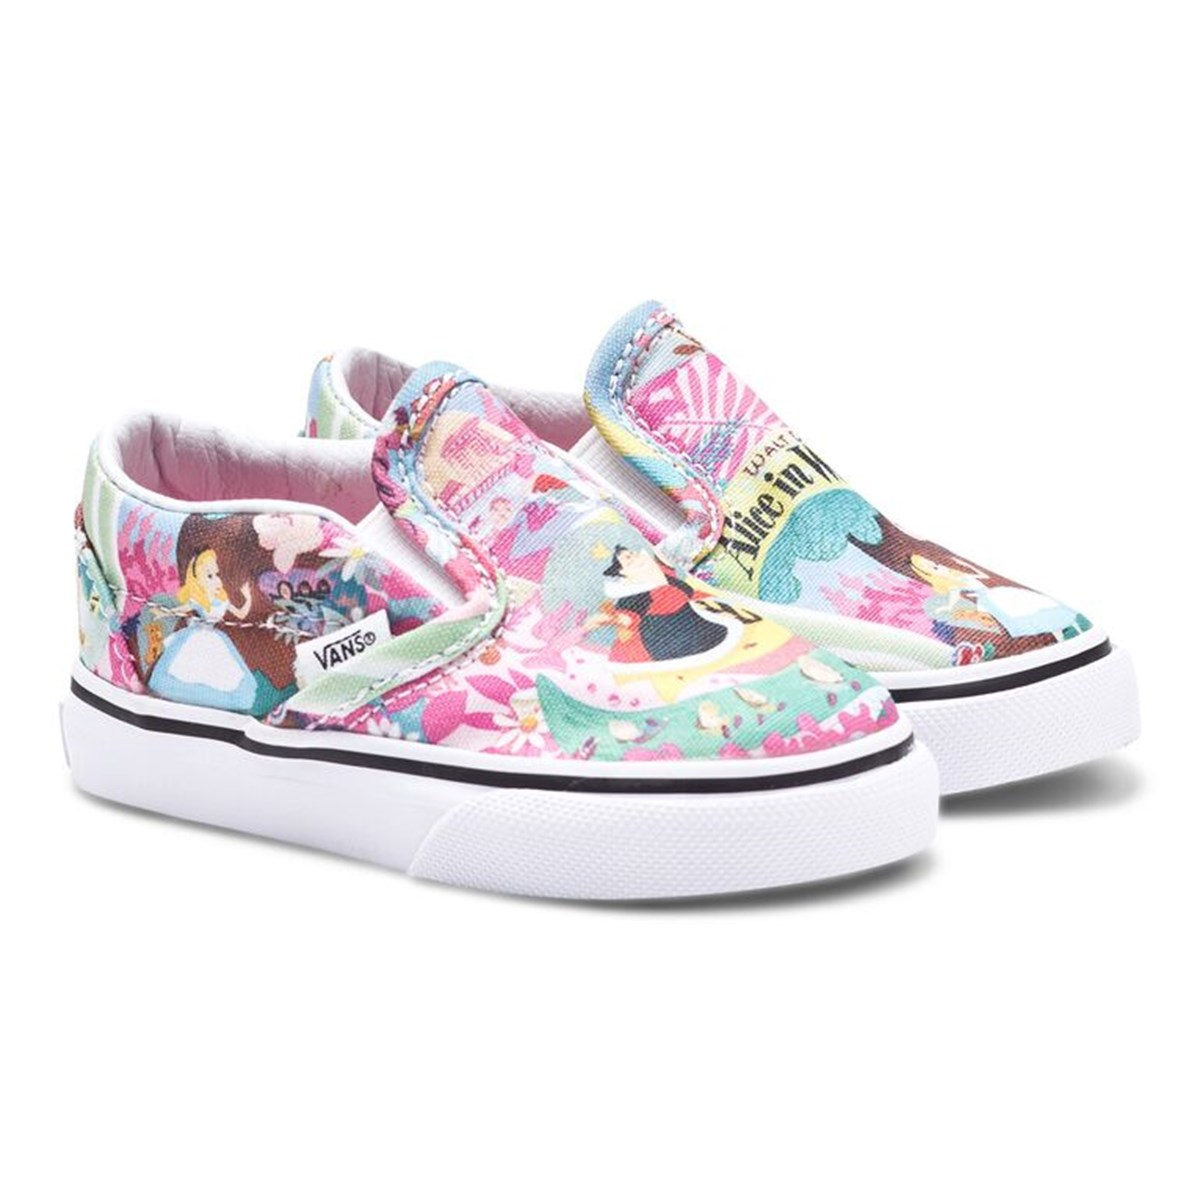 f7927fcef2f Vans Disney Alice in Wonderland Slip On Trainers